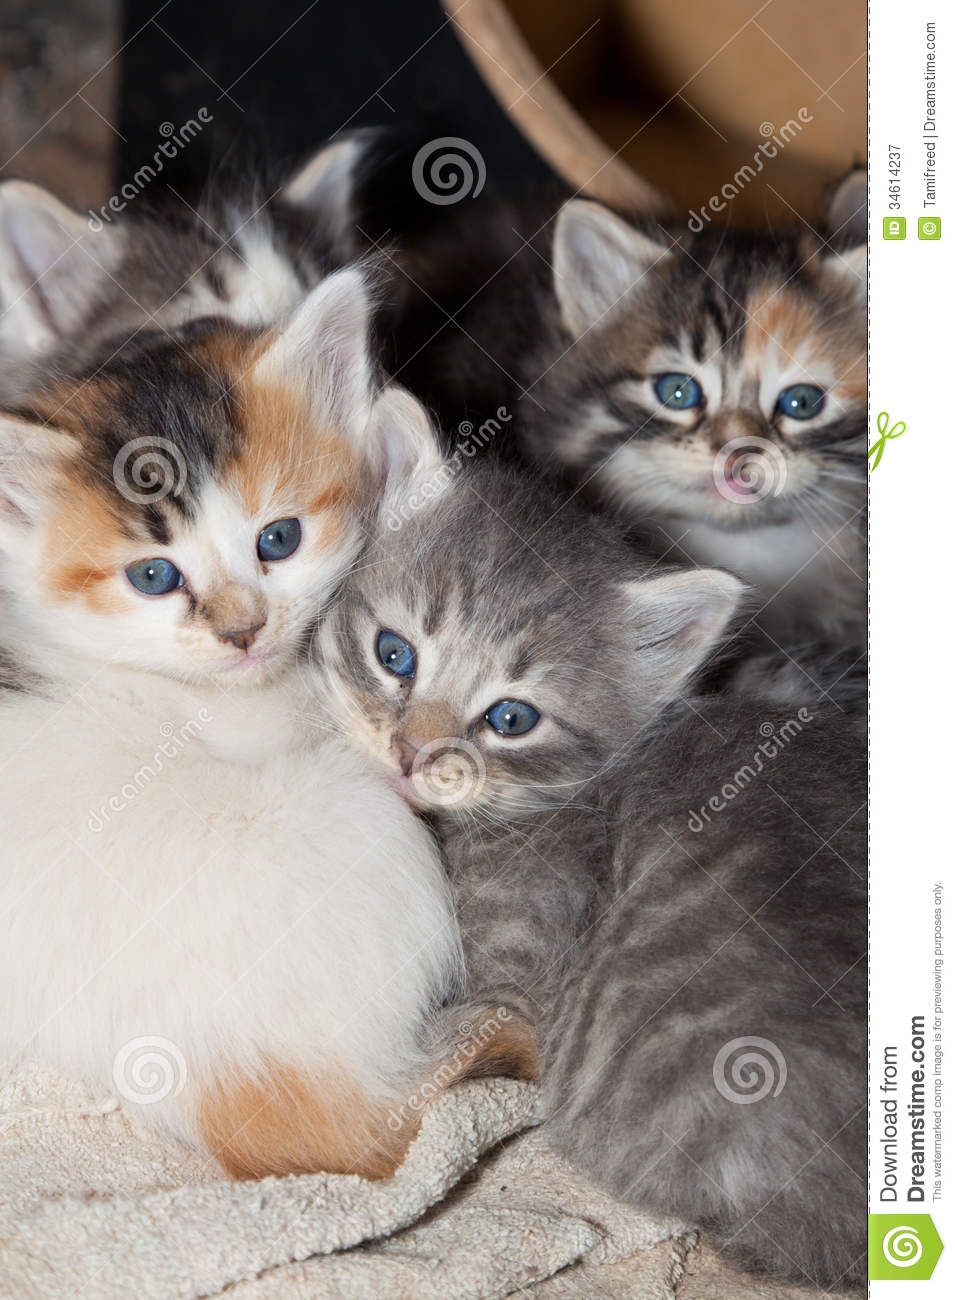 Kittens Fluffy Calico Grey Stripped Cuddled Together Old Towel